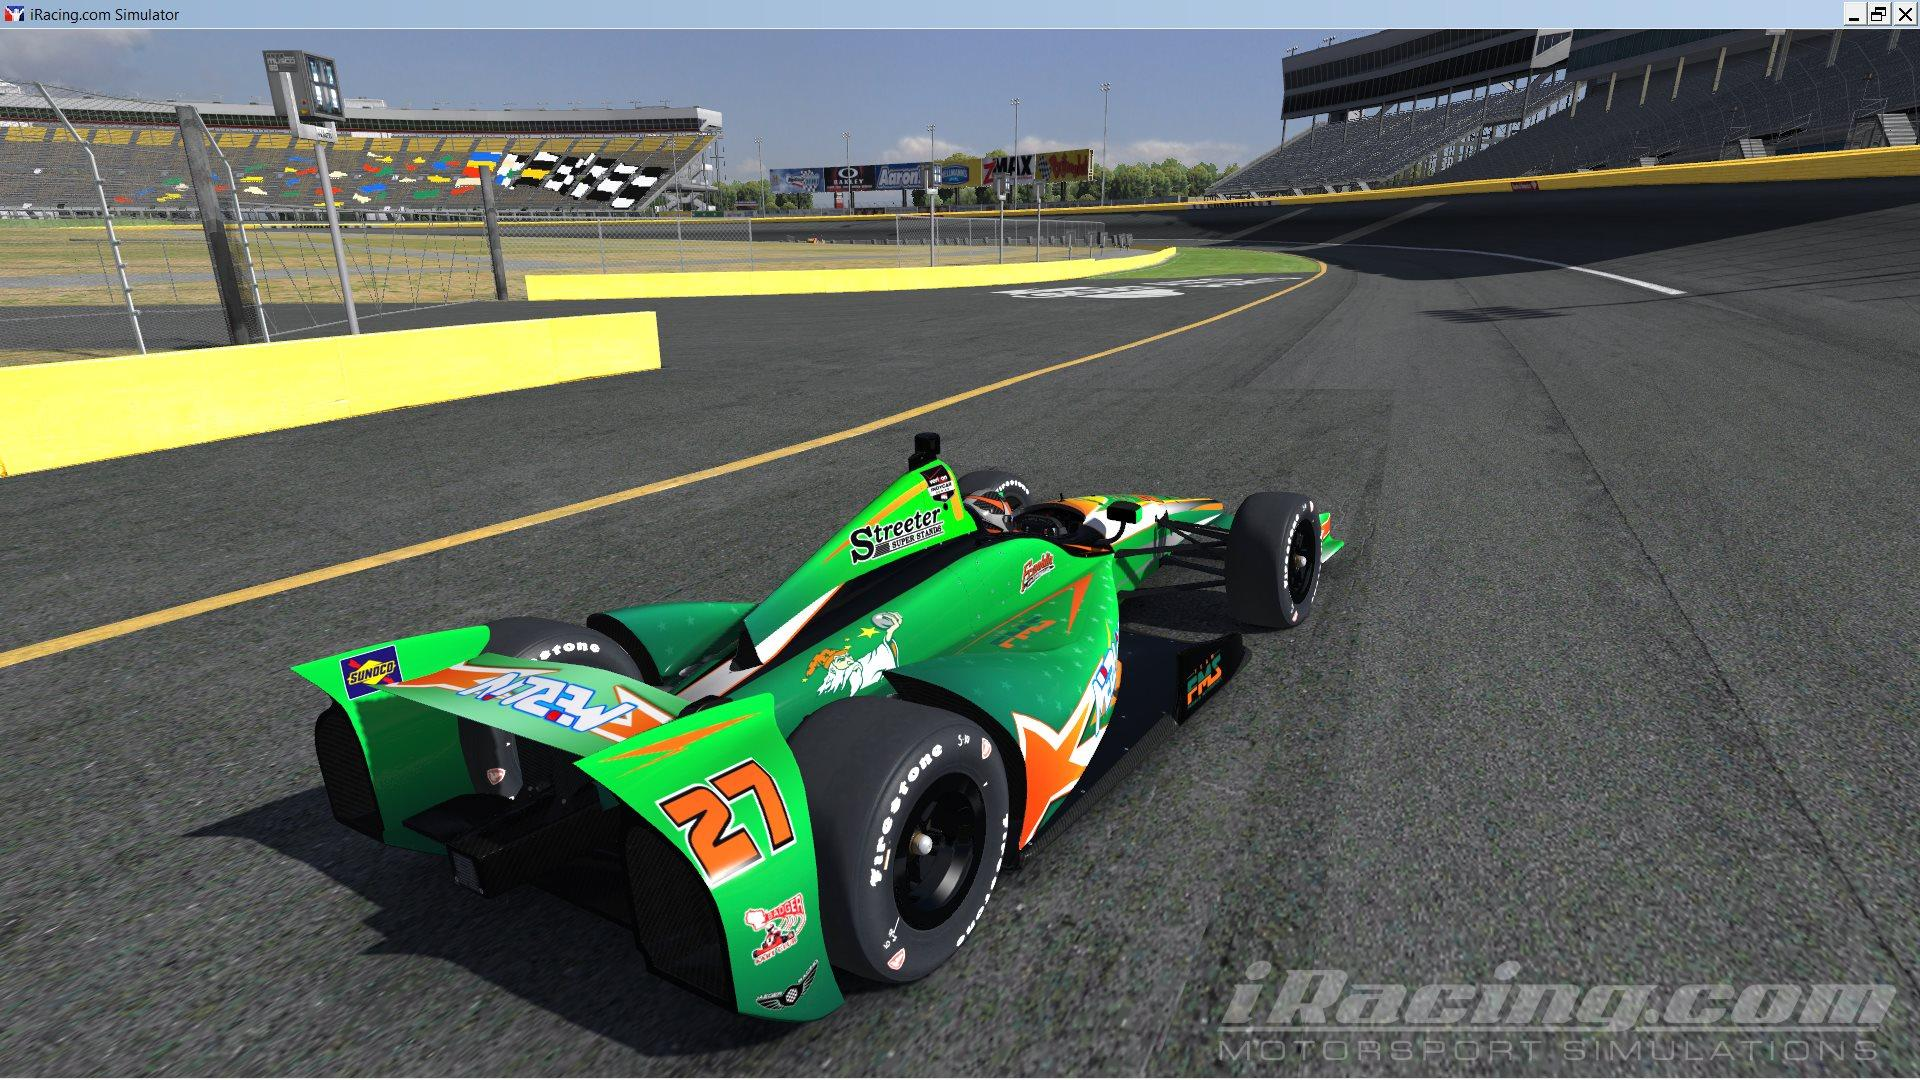 Merlin Karting Dw12 By Nicholas Orth Trading Paints